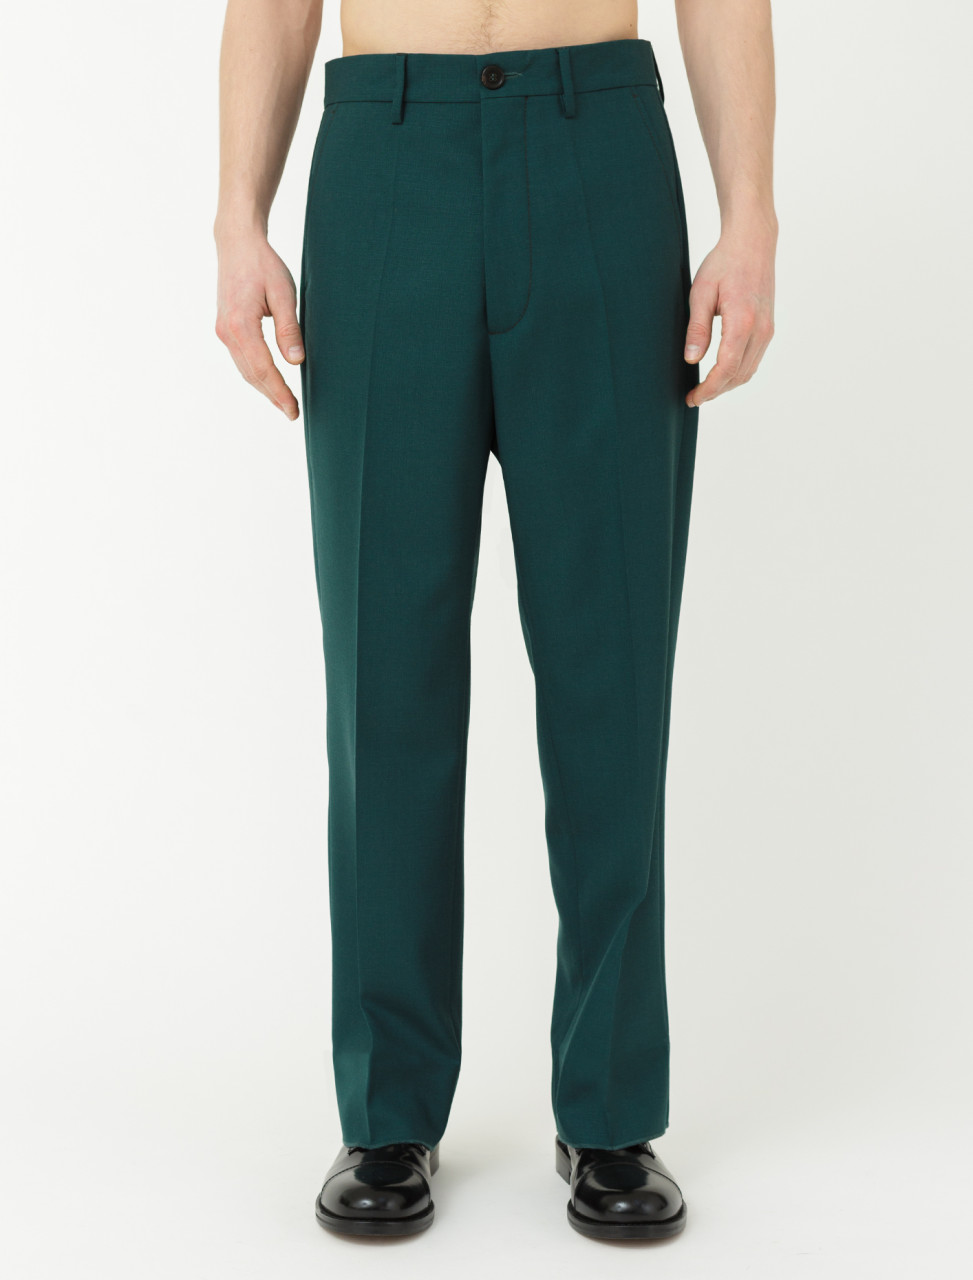 Trousers in Green